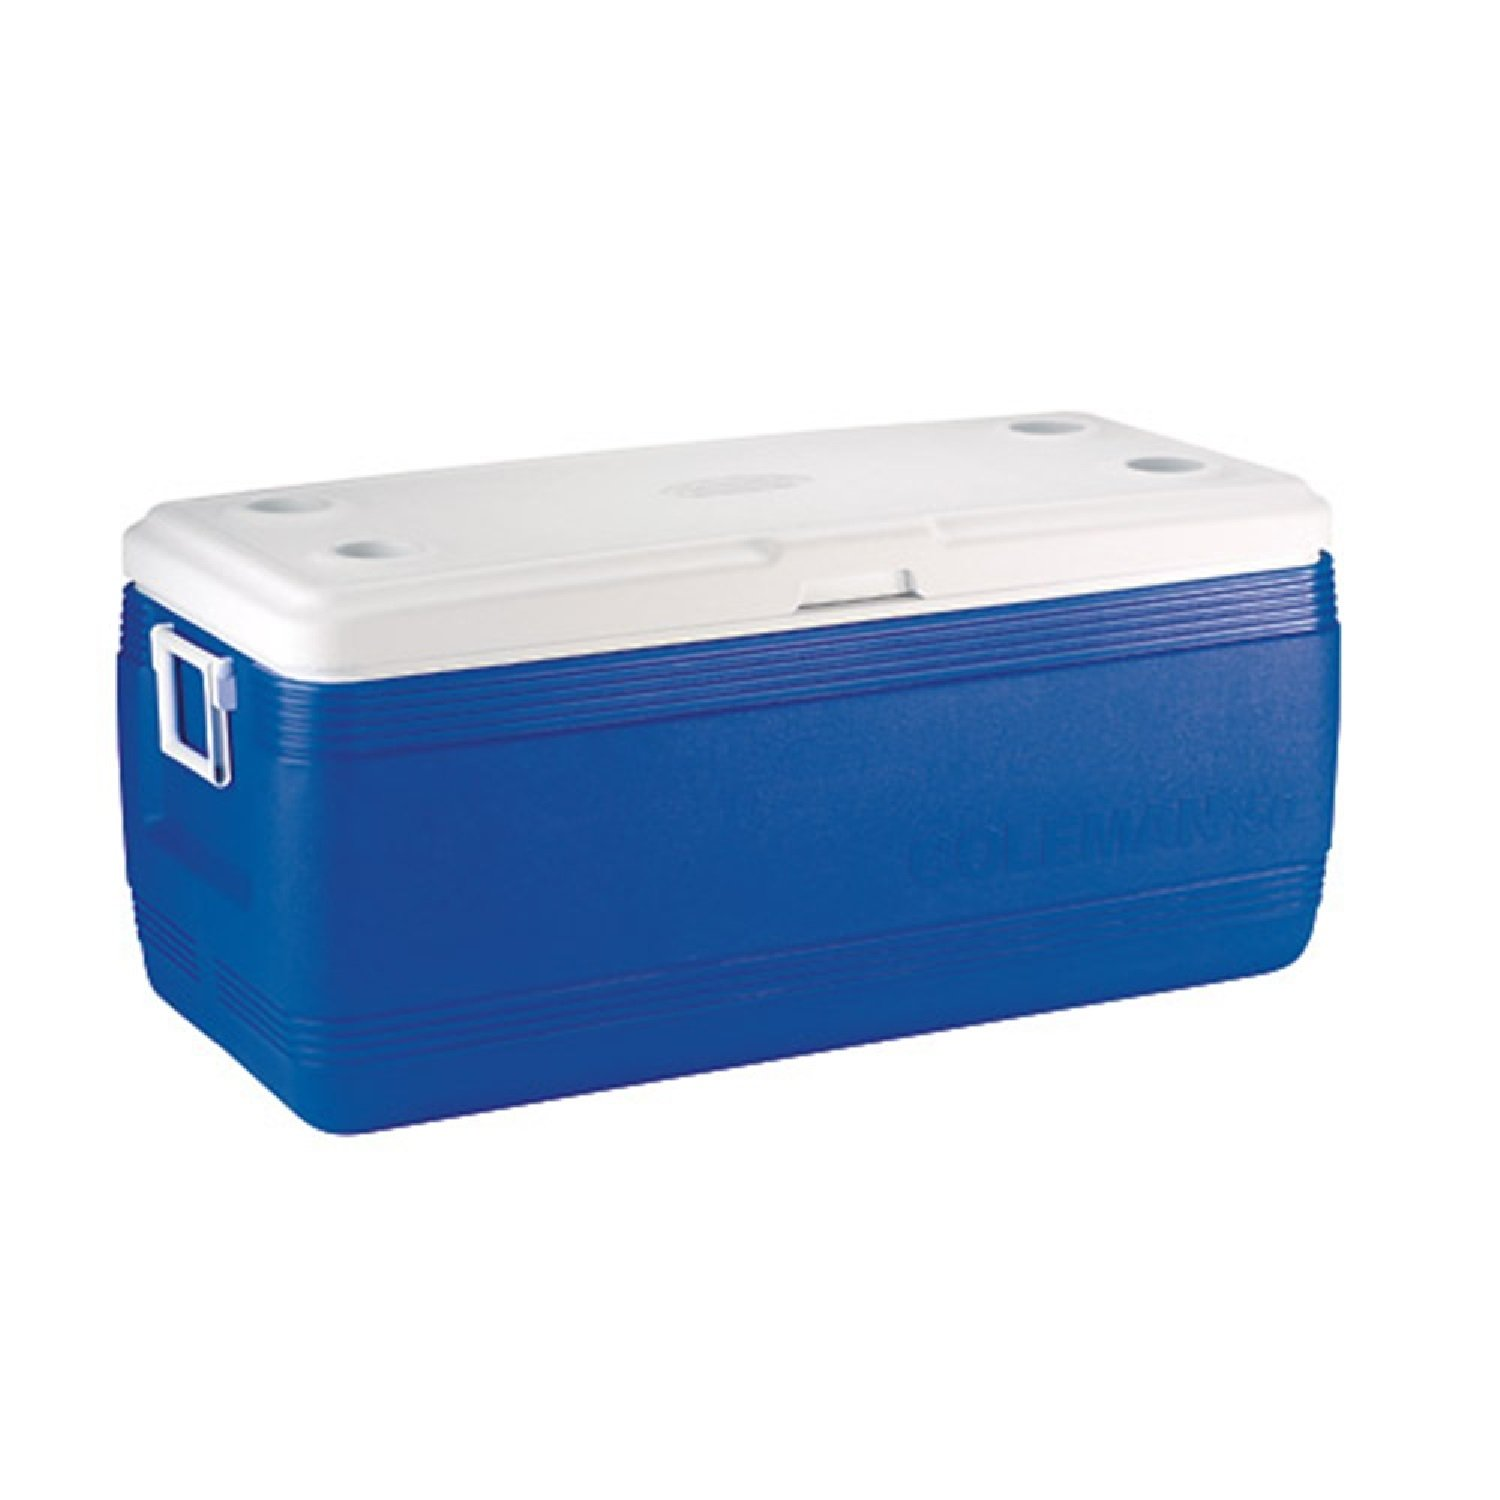 Amazon.com : Coleman 150 Quart Performance Cooler : Large Cooler : Sports U0026  Outdoors